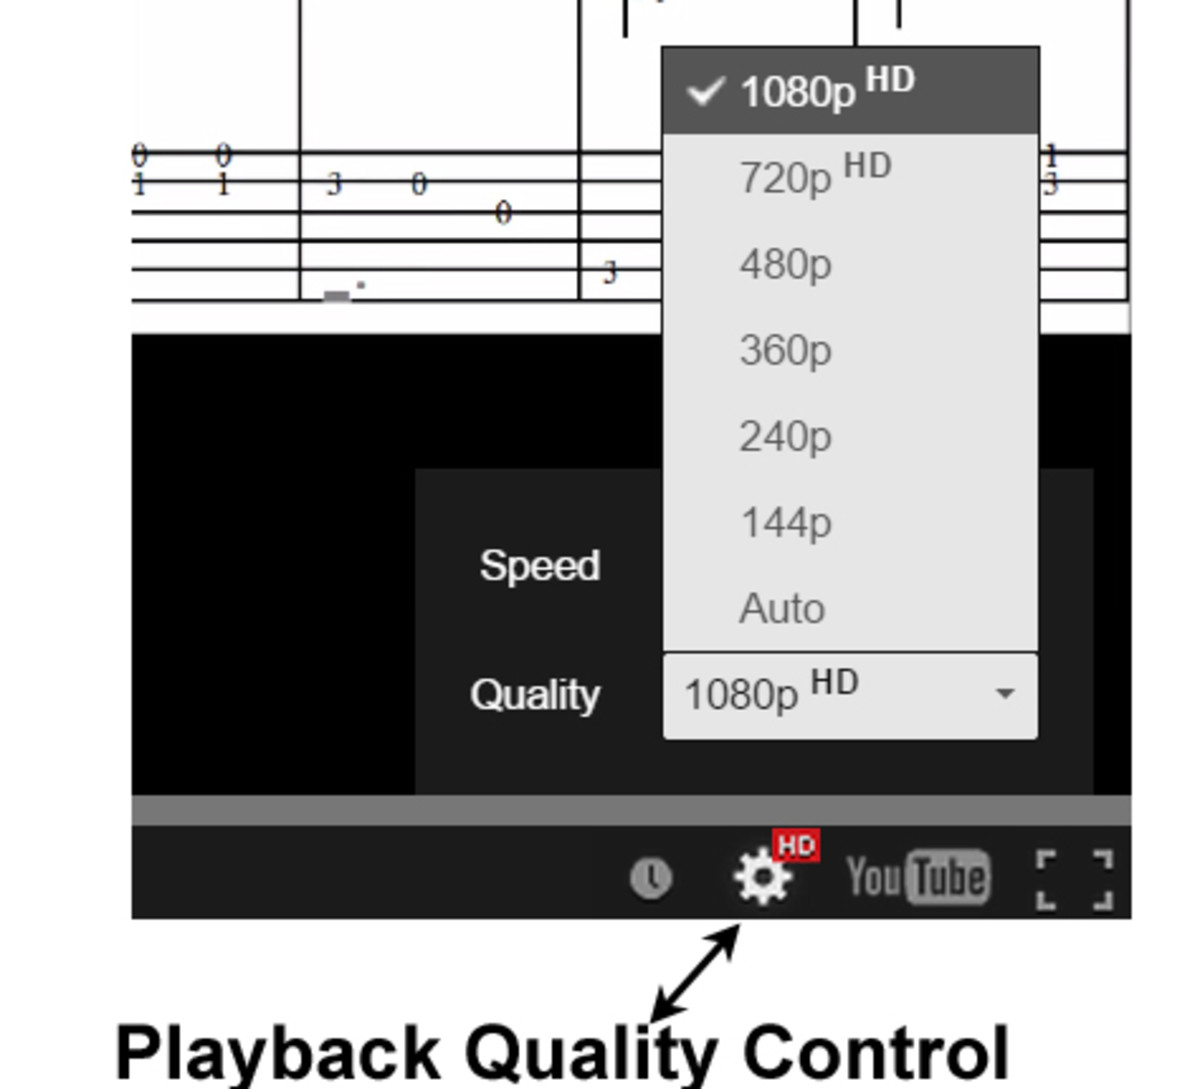 The control becomes visible after you click play.